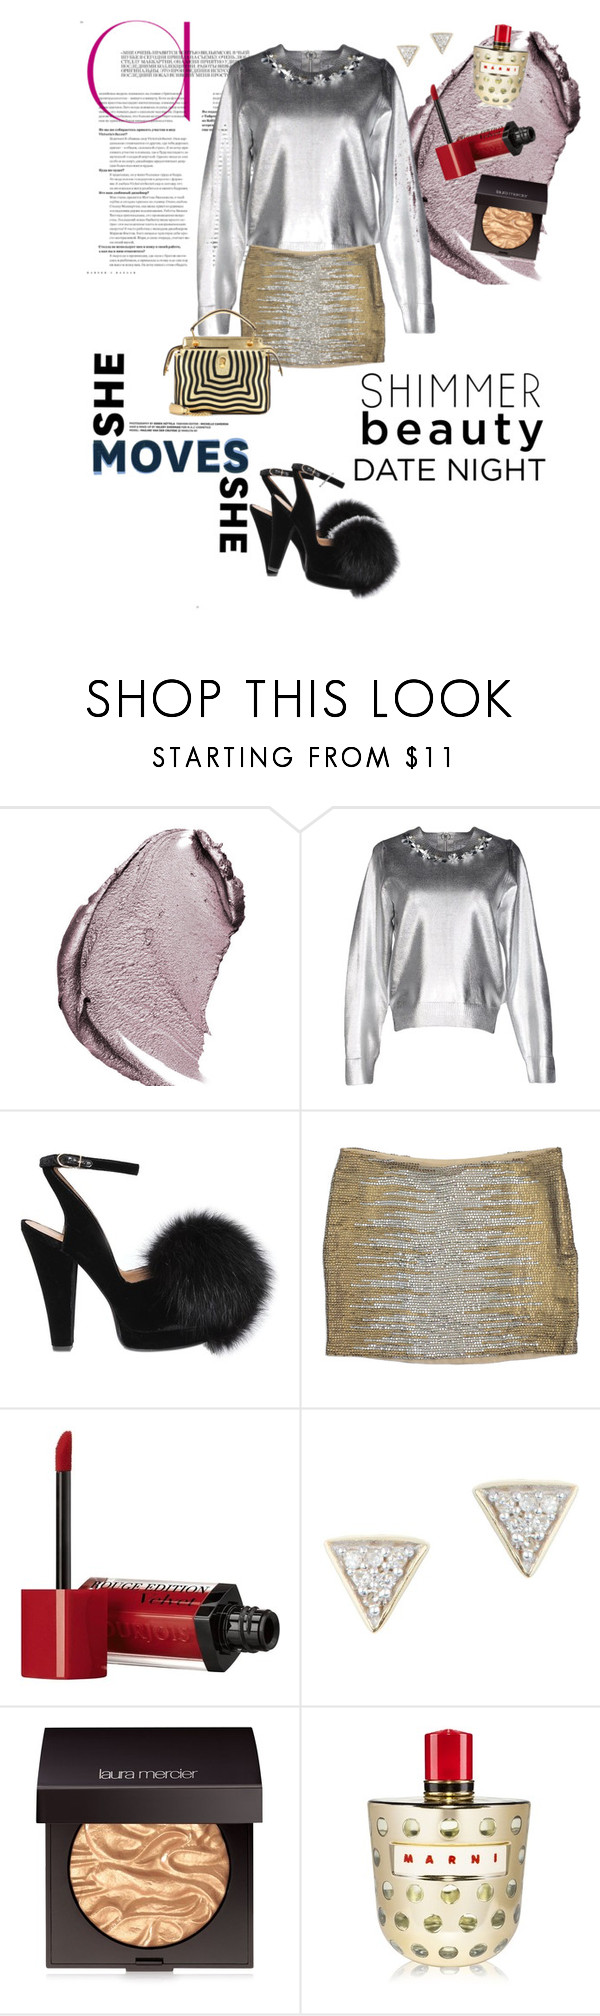 """Shimmer Beauty Date Night"" by flippintickledinc ❤ liked on Polyvore featuring Christian Dior, Muveil, Sonia Rykiel, Haute Hippie, Bourjois, Adina Reyter, Laura Mercier, Marni, Fendi and DateNight"